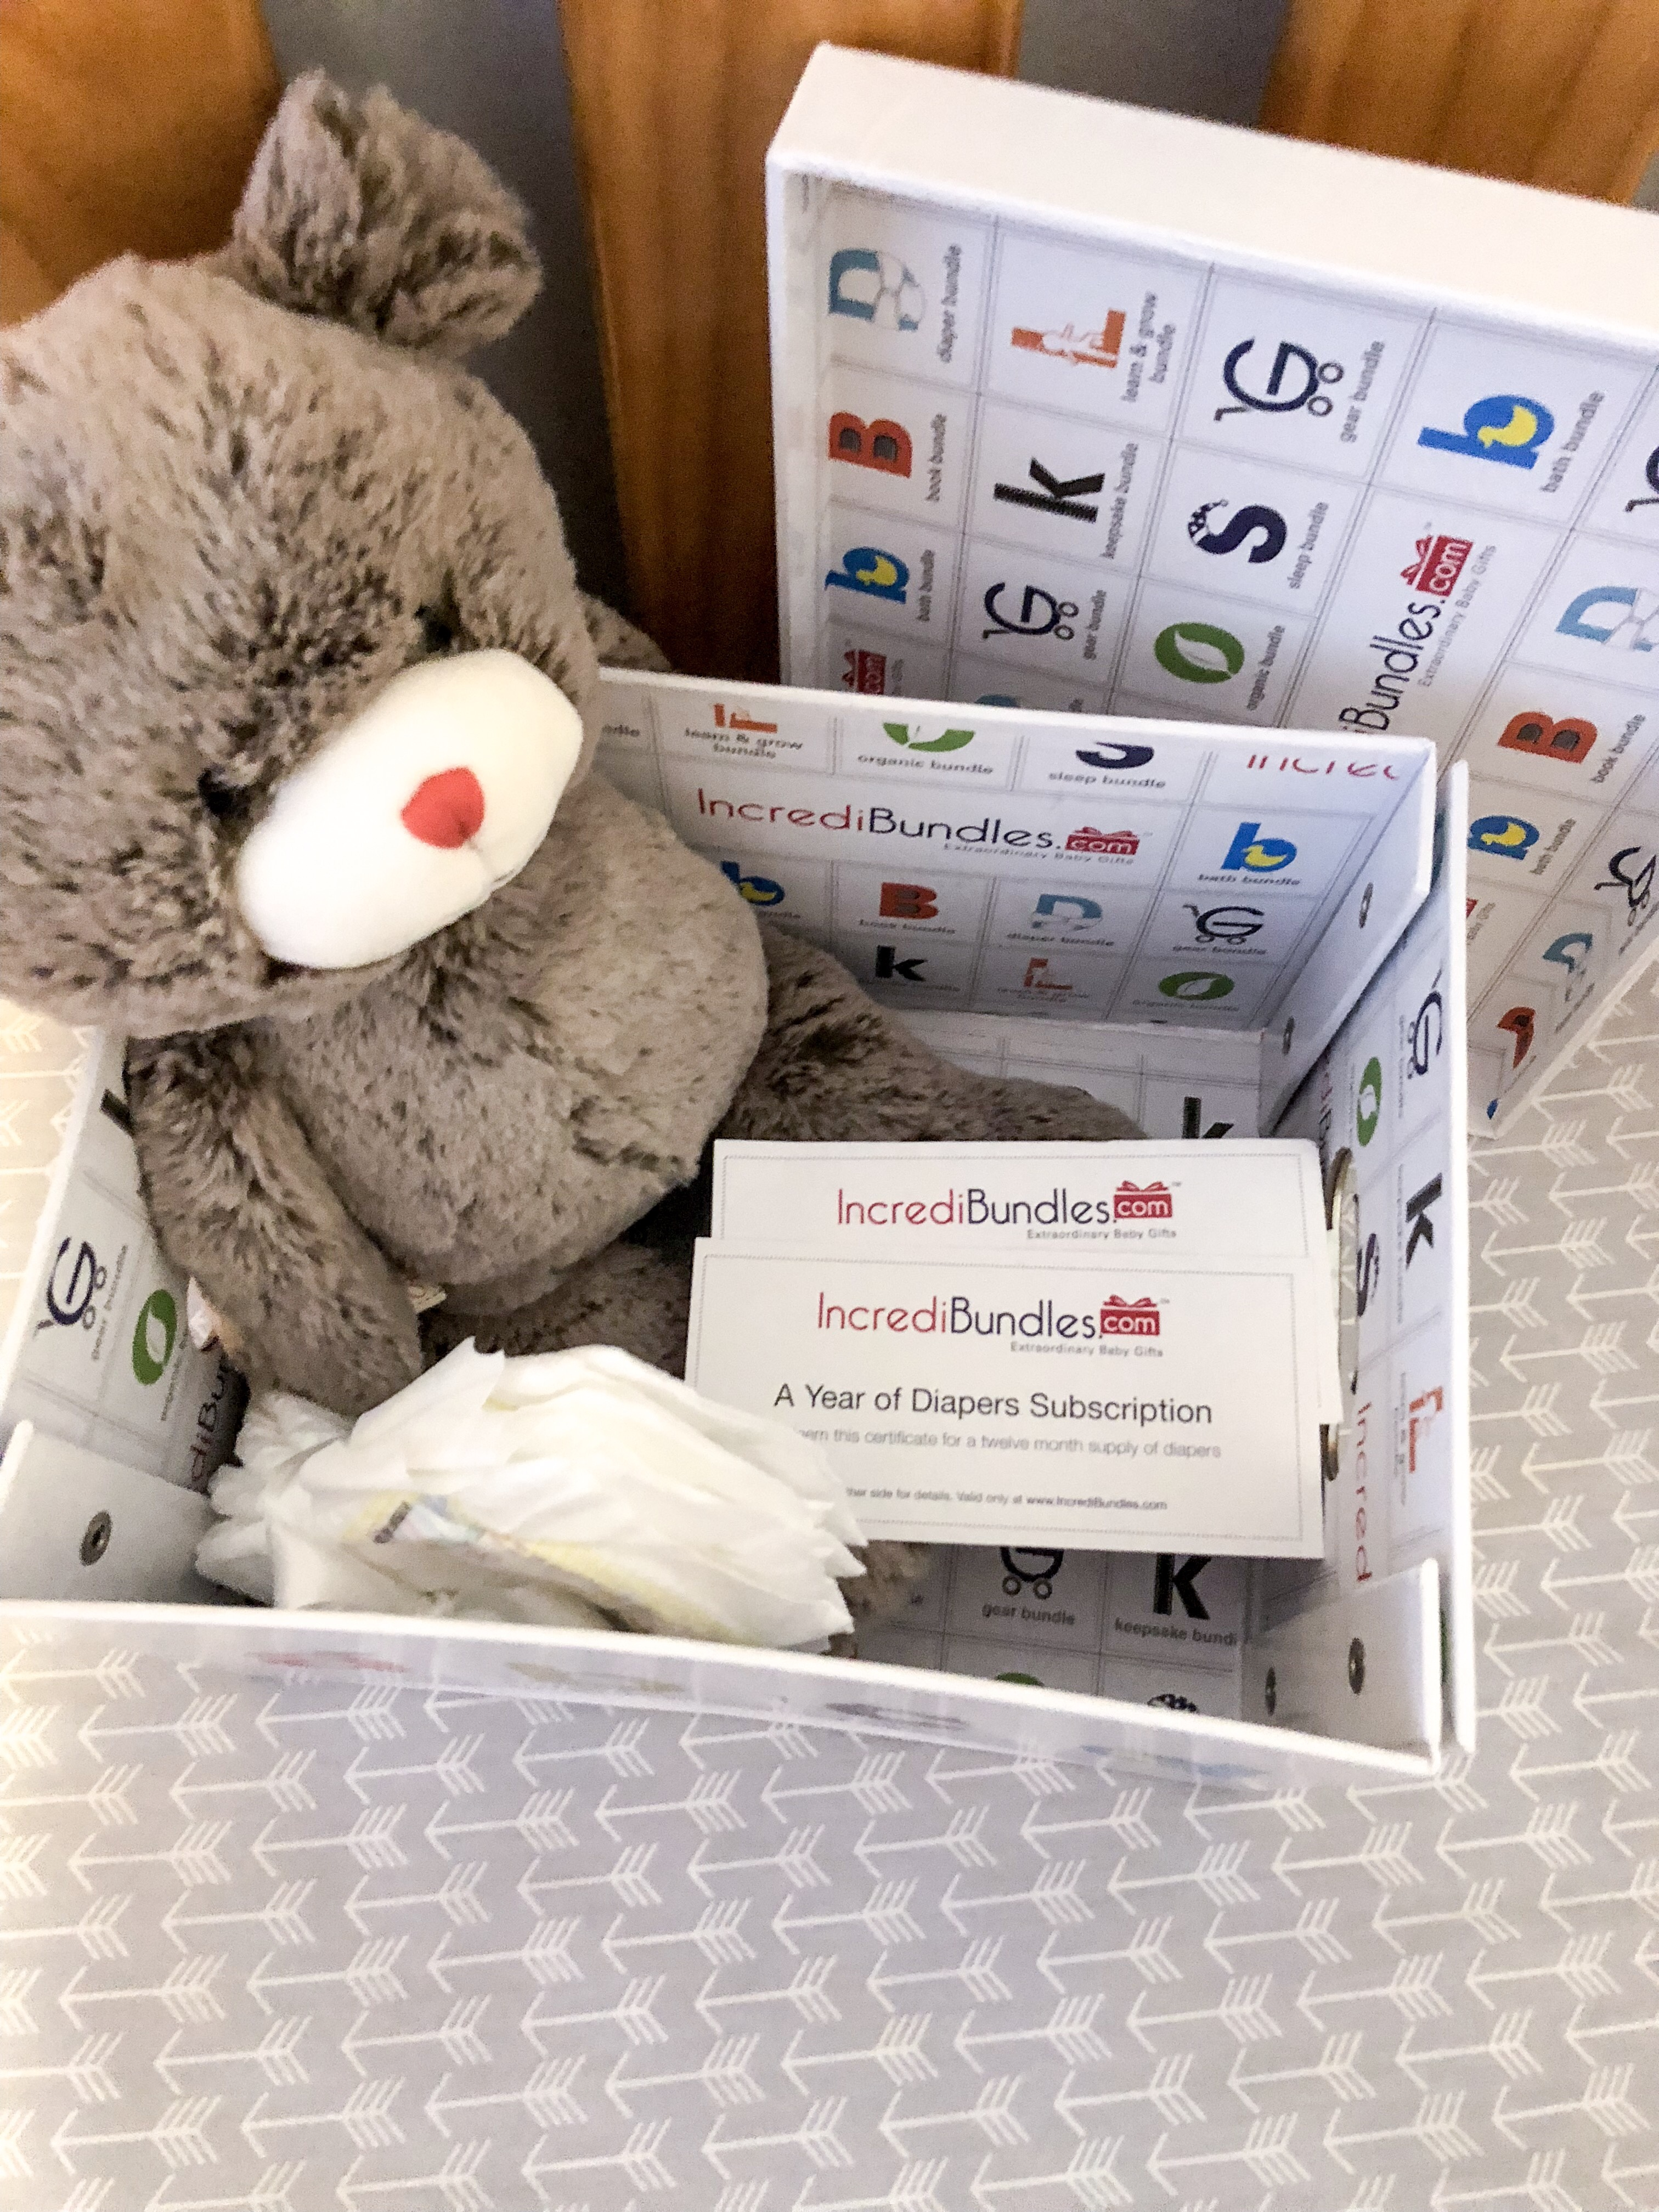 Looking for the perfect baby shower girt for a special mama to be? Want to get a gift they will actually use? Check out my review of IncrediBundles diaper subscription service and enter to win a free 3 month subscription of your own! | Baby | Baby shower gift | Diapers | Free diapers |